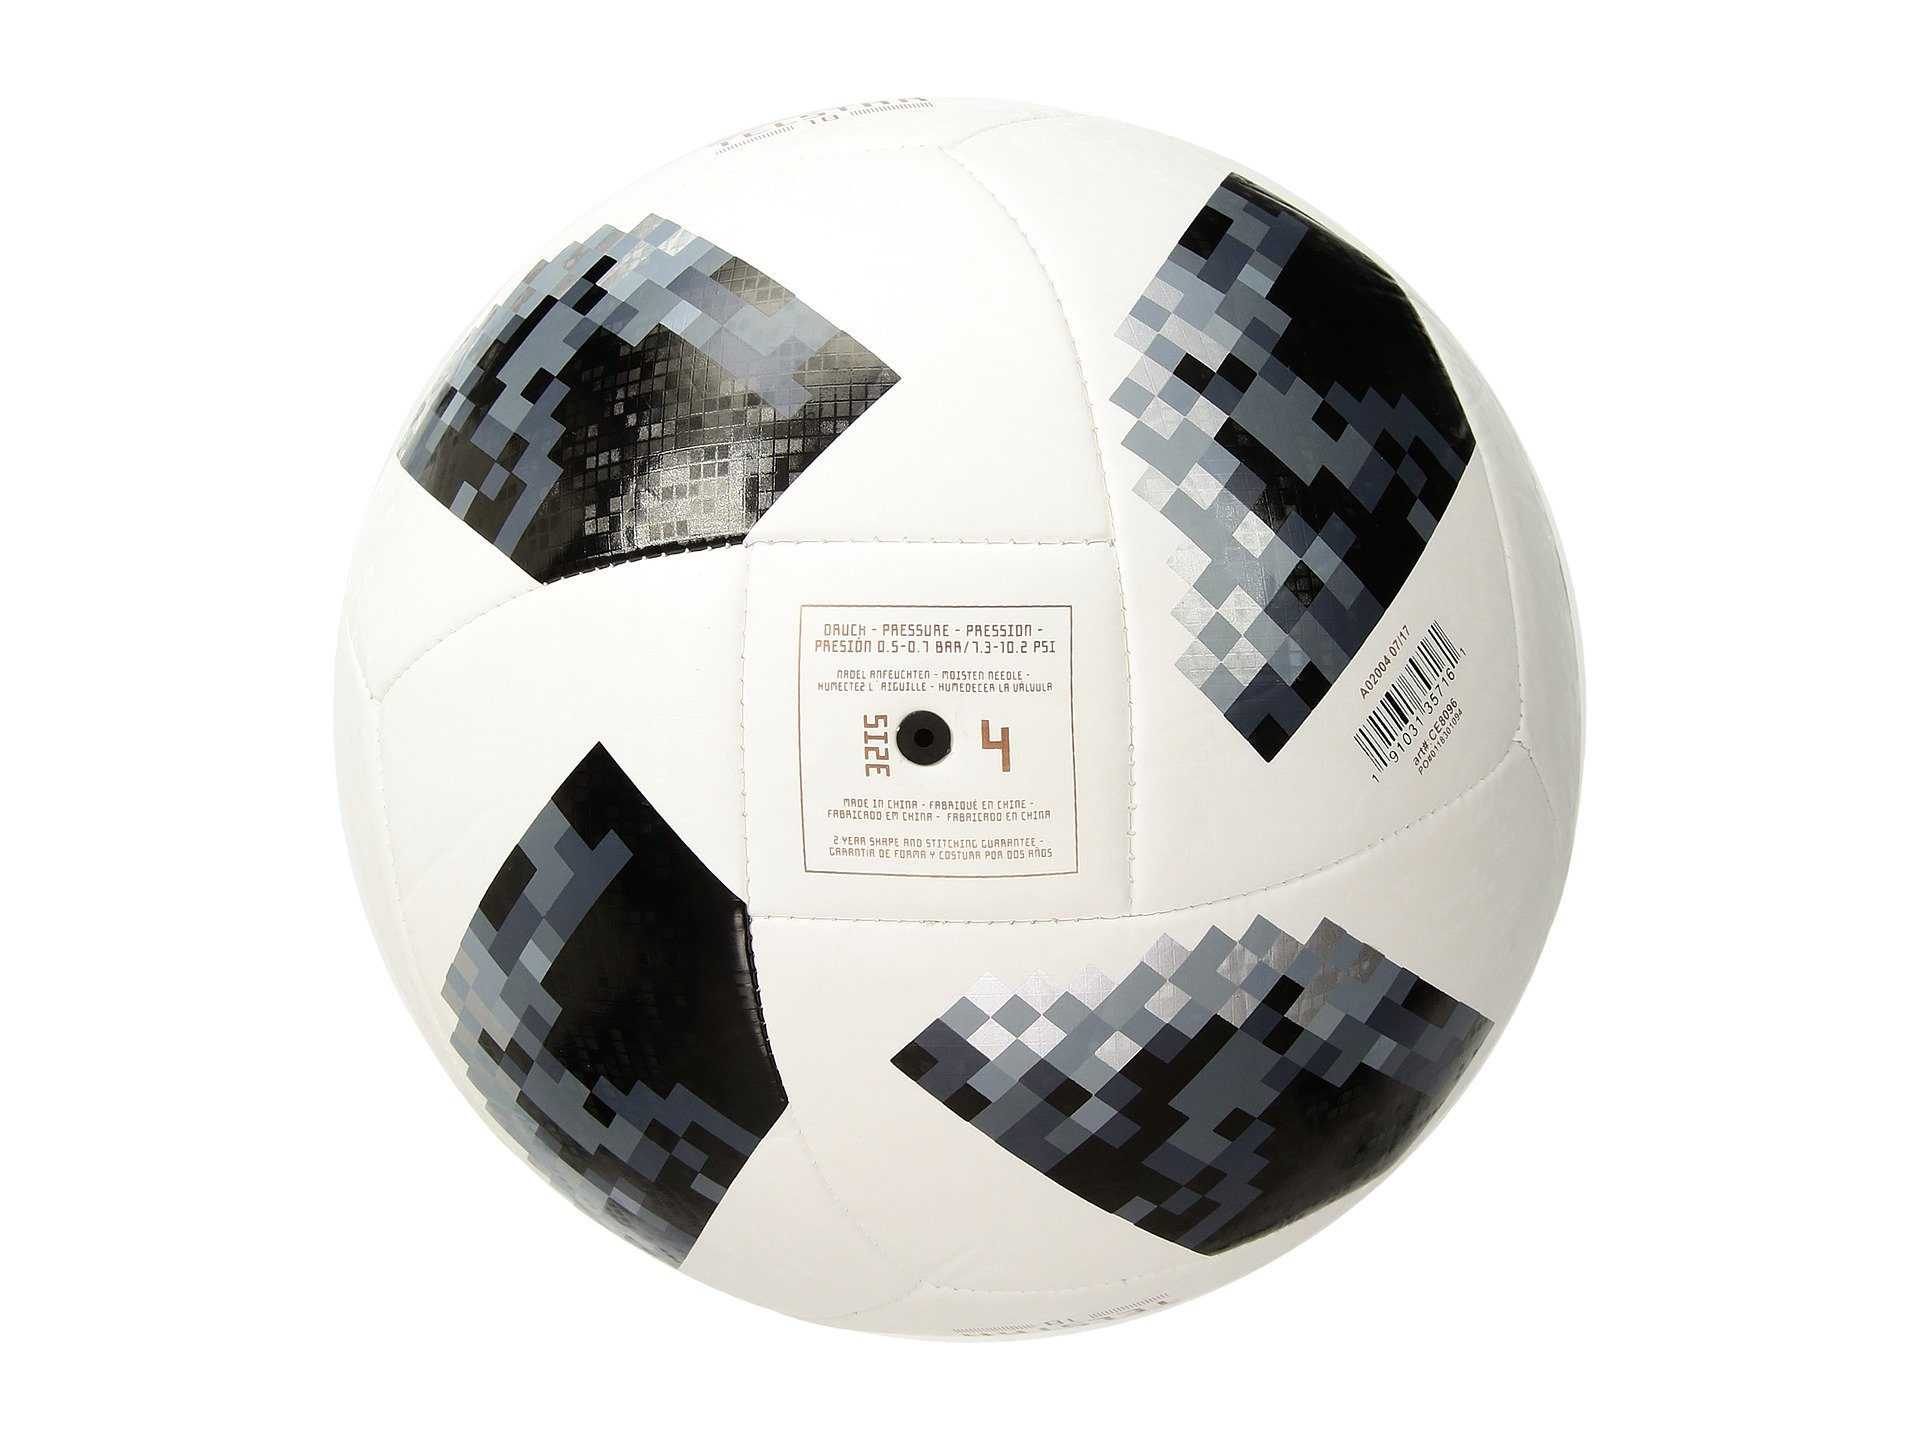 73410c164 adidas FIFA World Cup Glider Ball White/Black/Silver Metallic, 5 - CE8096 <  Balls < Sports & Outdoors - tibs